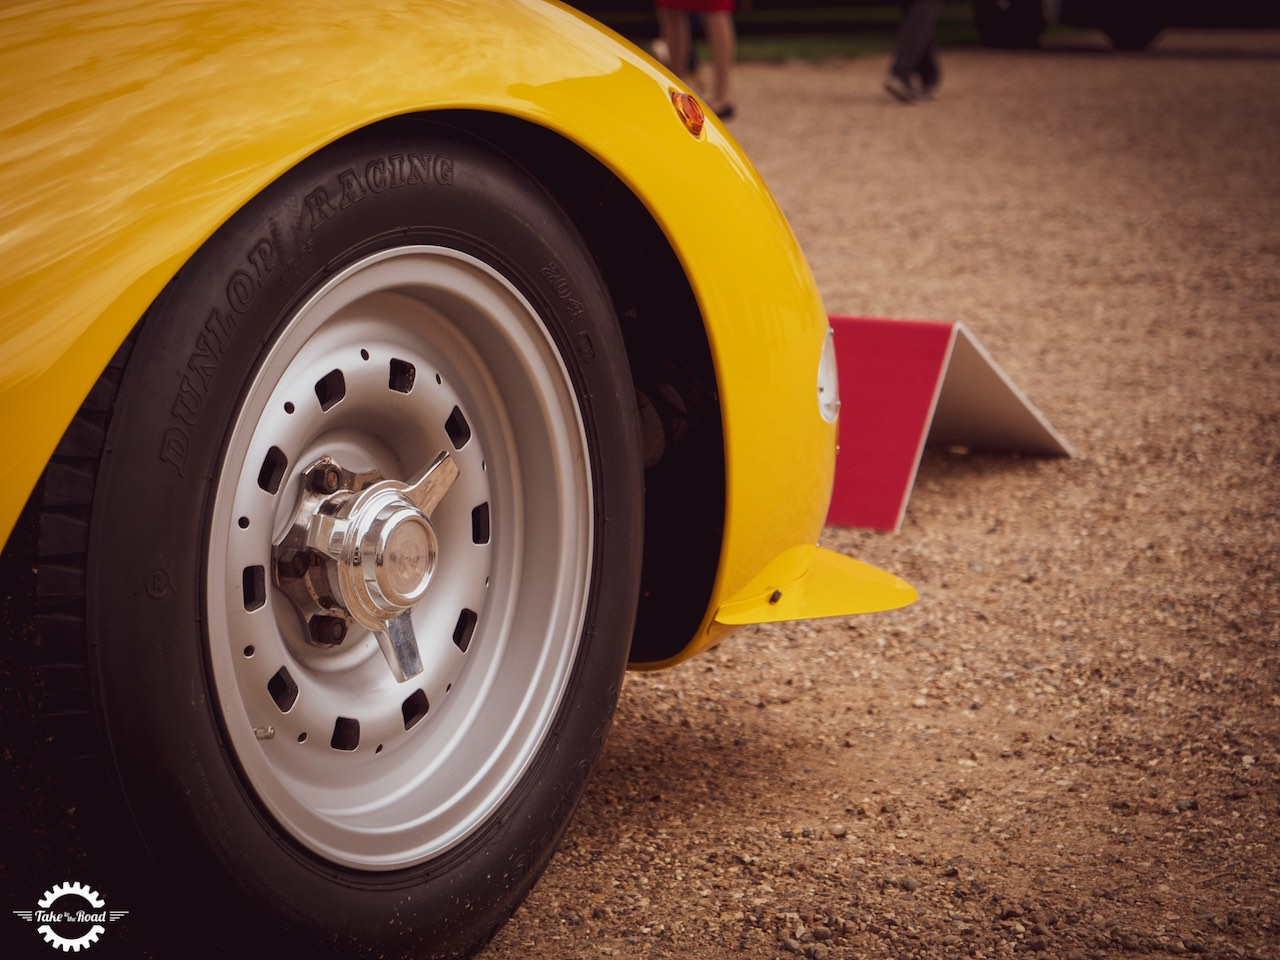 How to get your classic car ready for winter like a pro